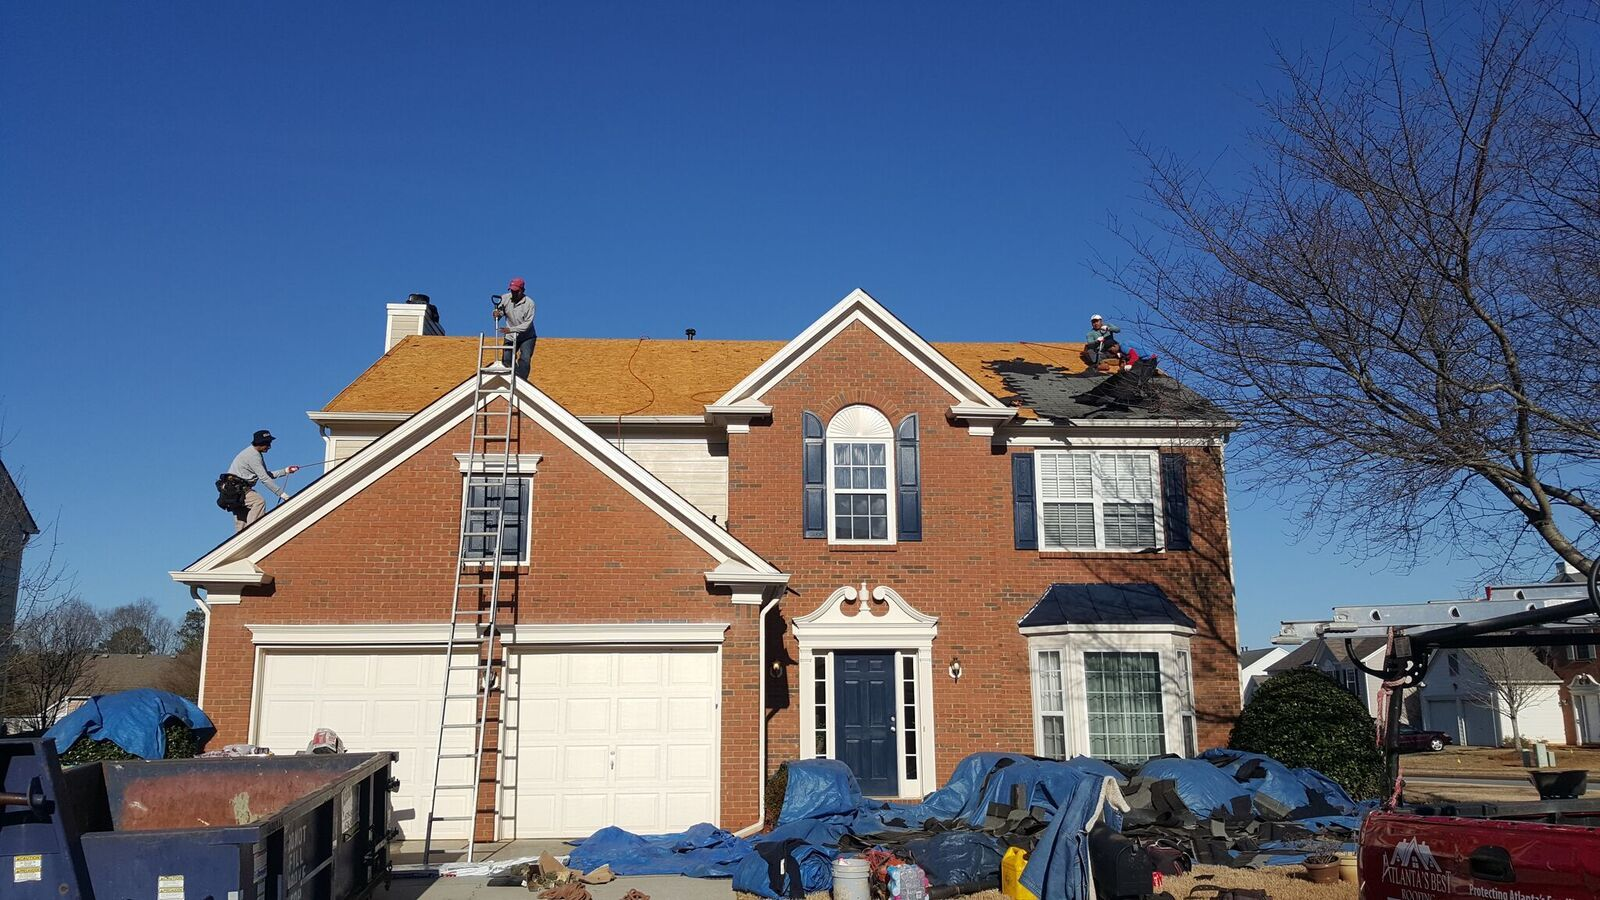 Call Us For Professional Atlanta Roofing Contractor Also In Marietta Acworth Kennesaw Is A Full Service Home Roofing Roofing Contractors Roofing Roof Repair